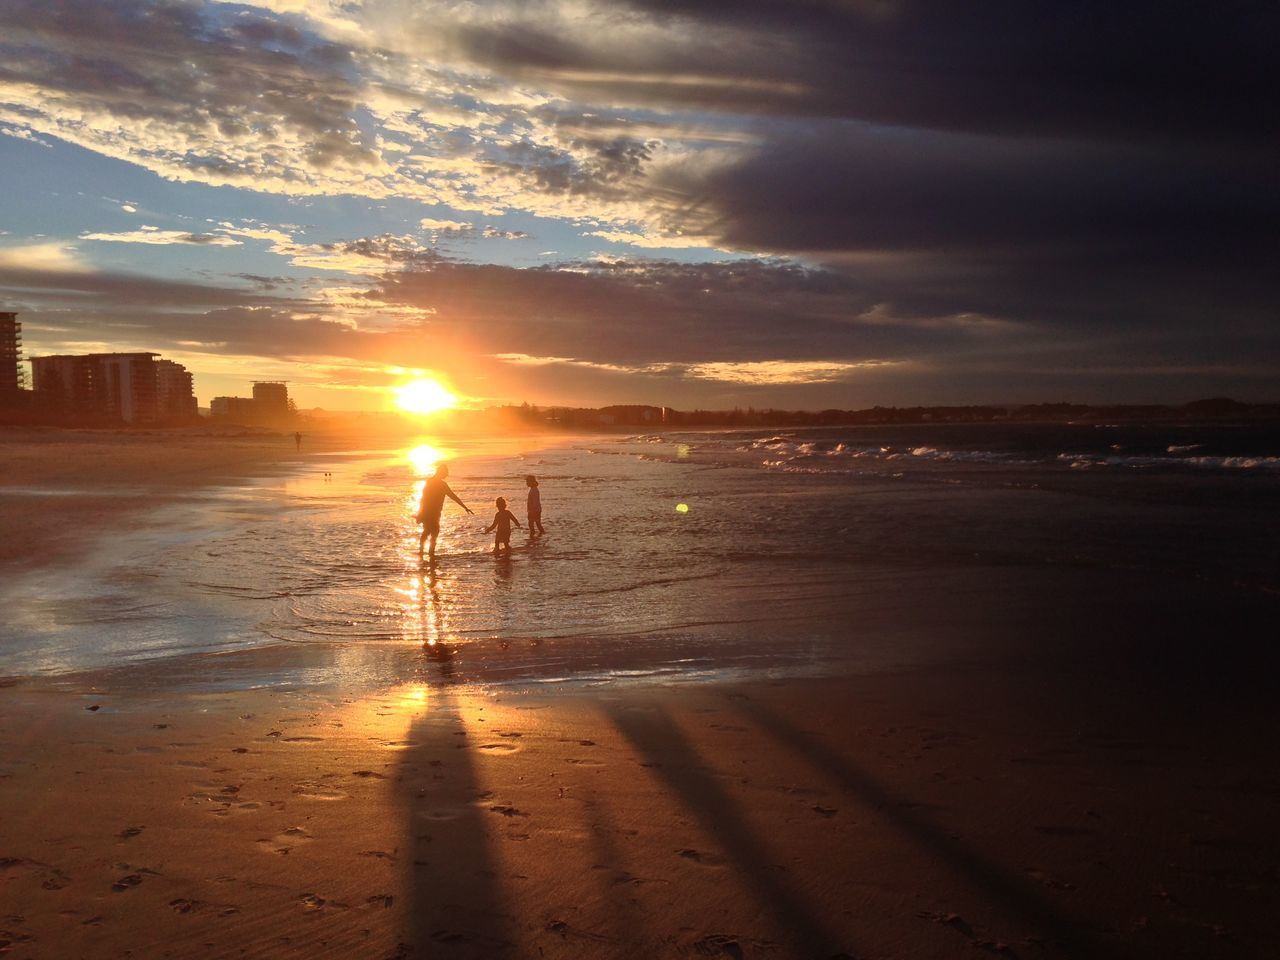 Beach Beauty In Nature Cloud - Sky Family Kids Nature Outdoors Reflection Sand Scenics Sun Sunlight Sunset Value Bonding